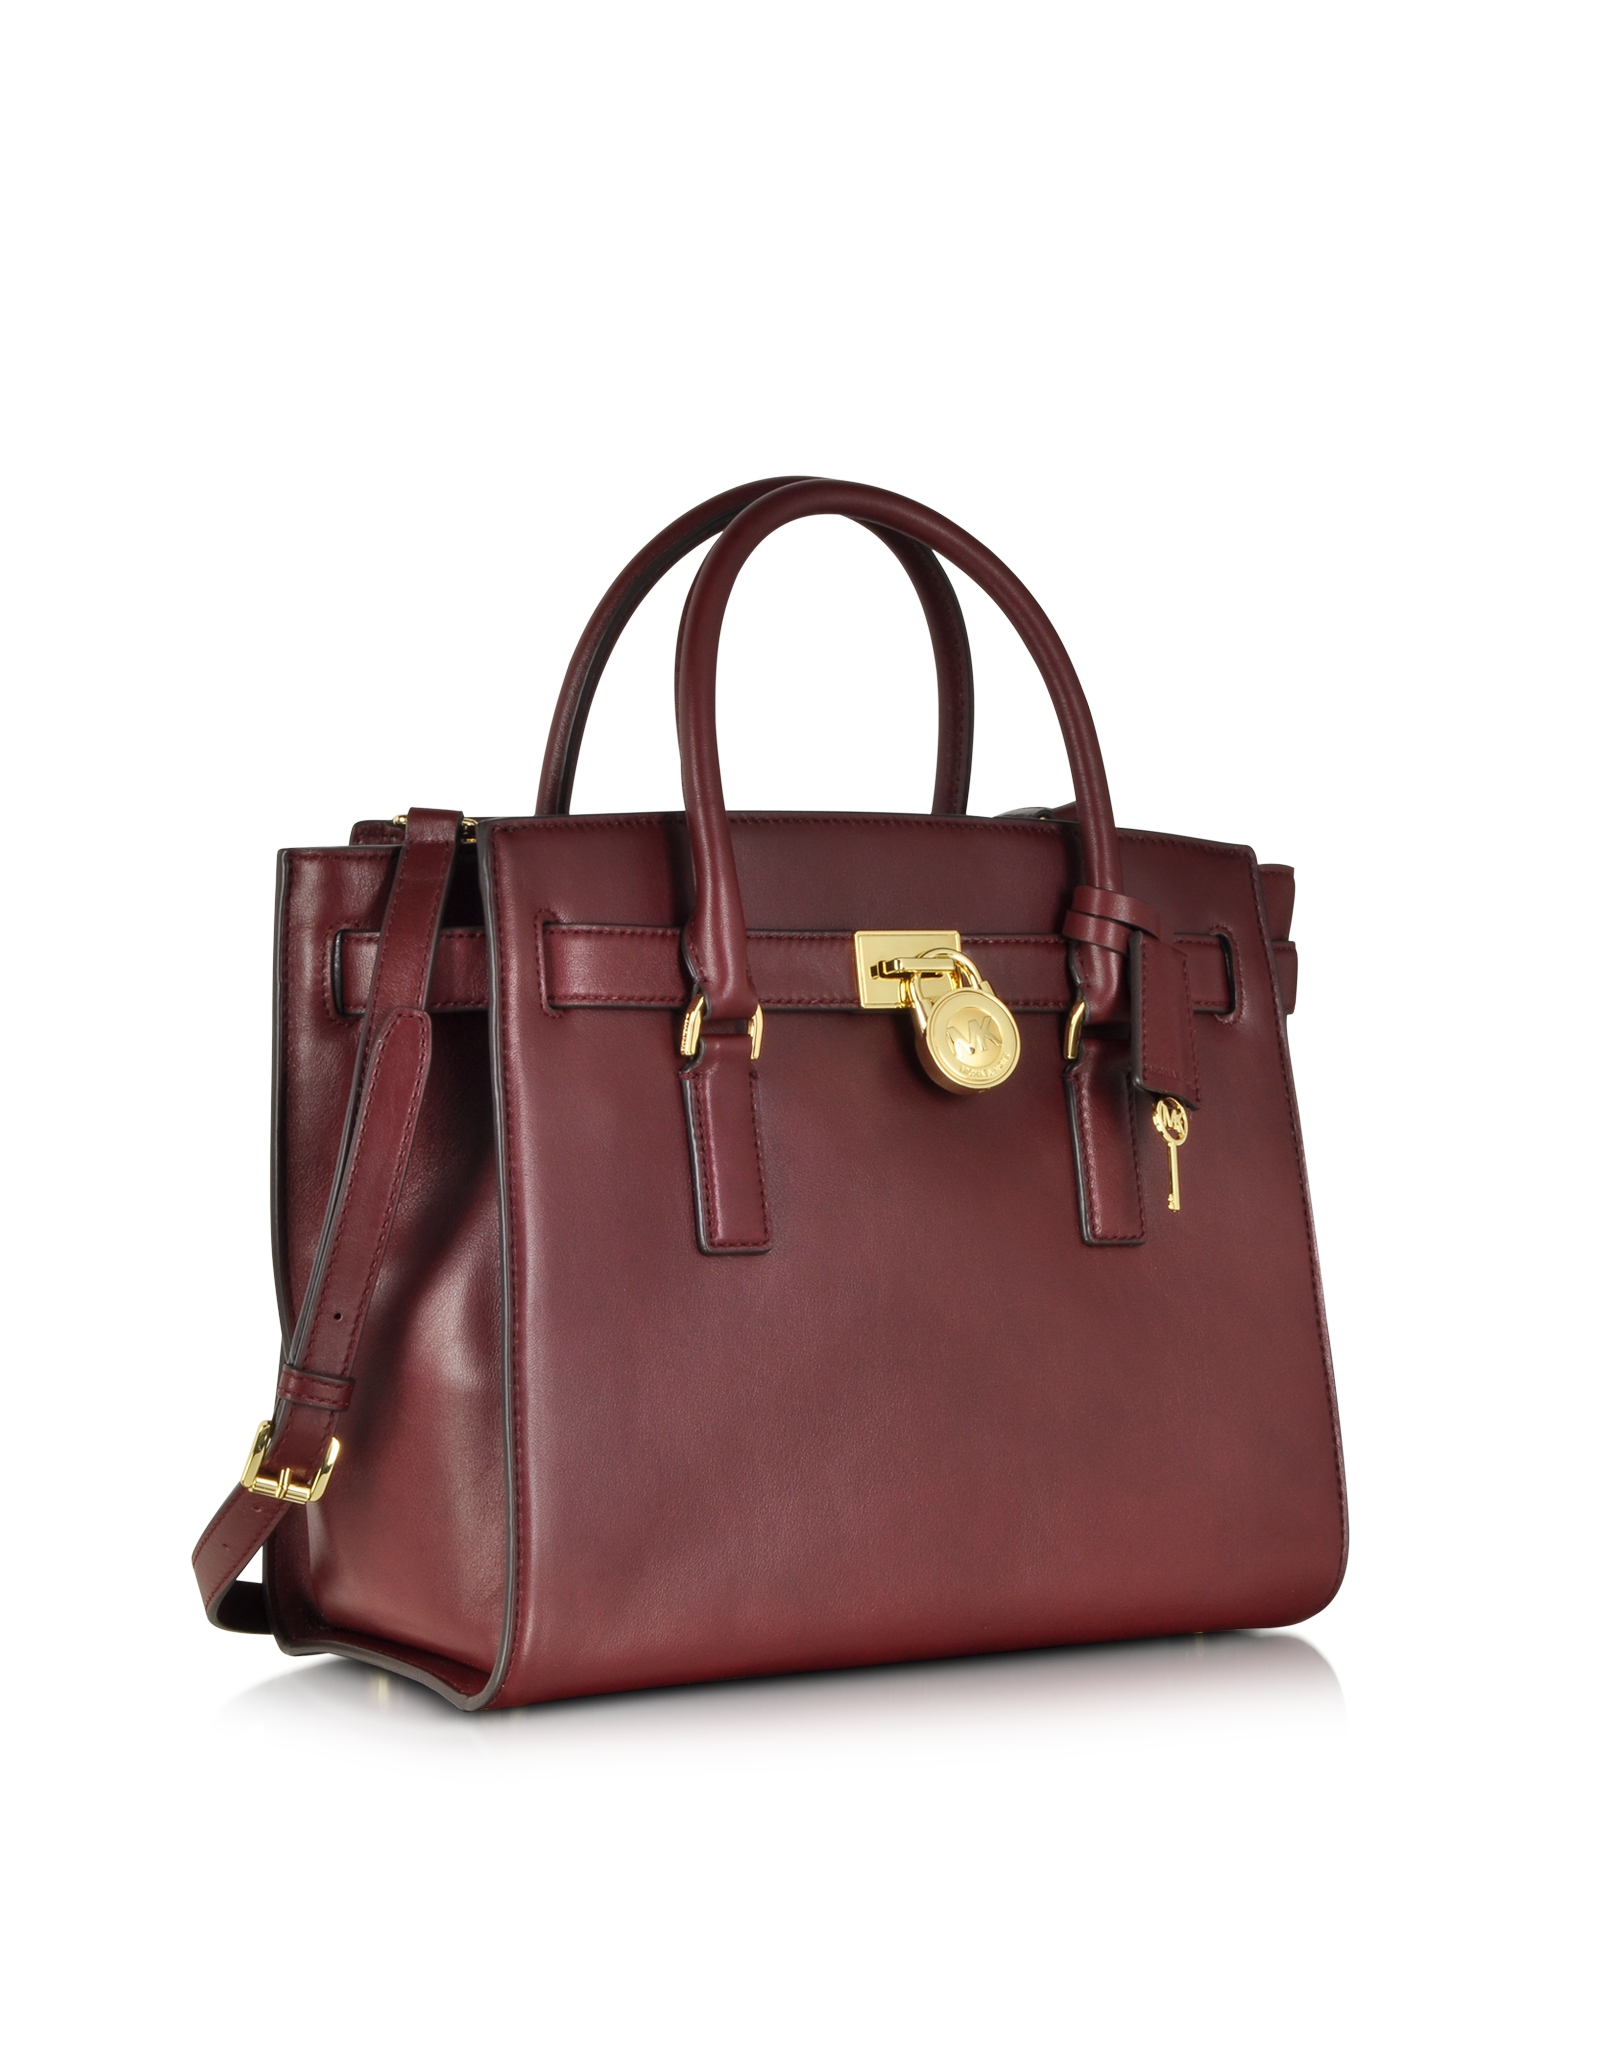 Michael kors Hamilton Traveler Large Leather Satchel in Brown | Lyst